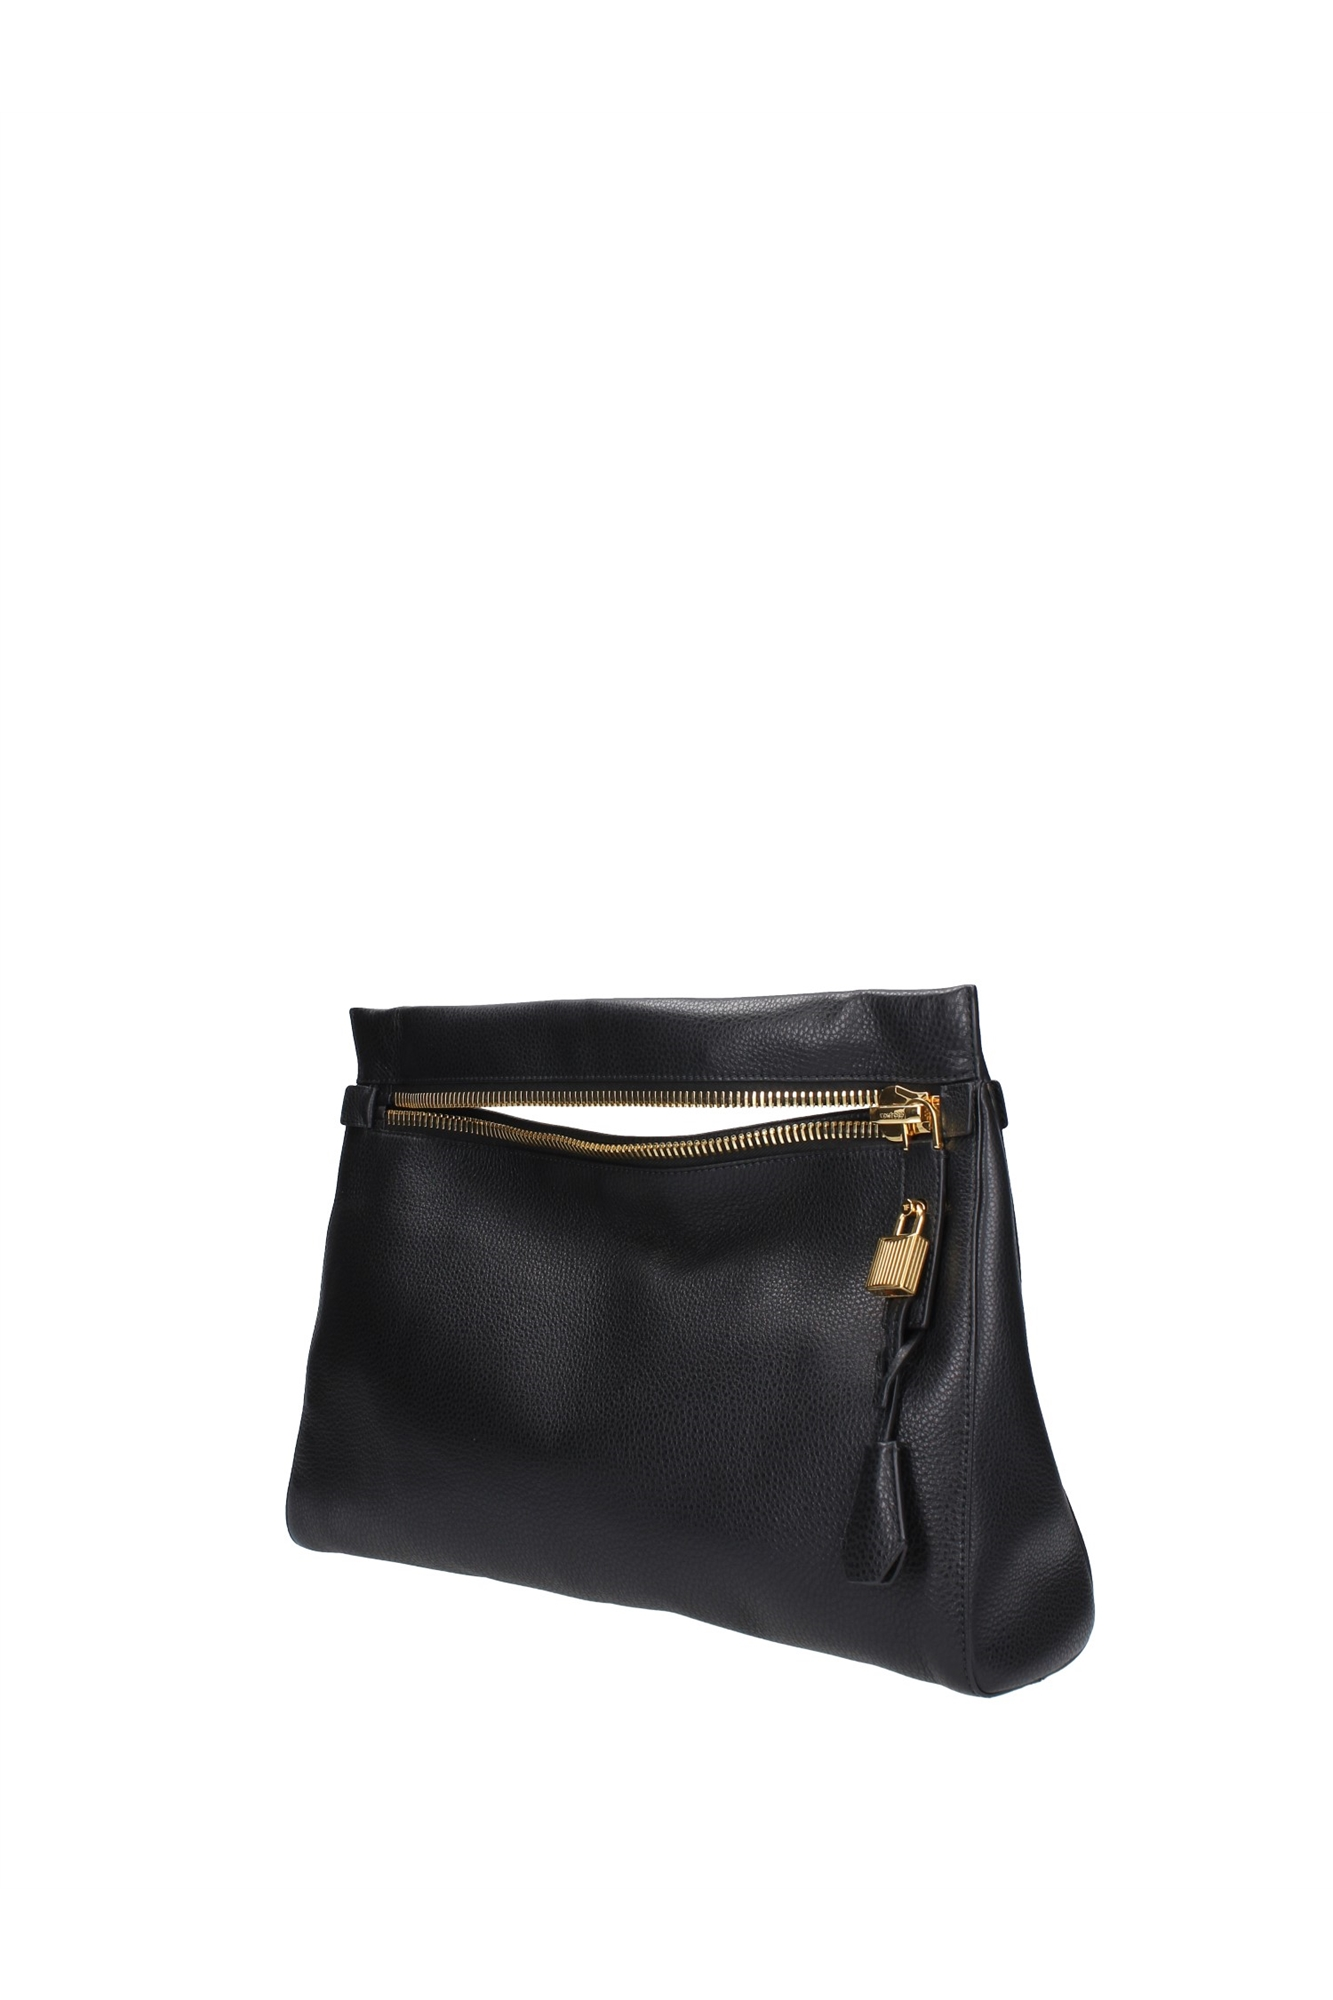 Cool Tom Ford Womens Small Lockfront Crossbody Bag Black In Black  Lyst